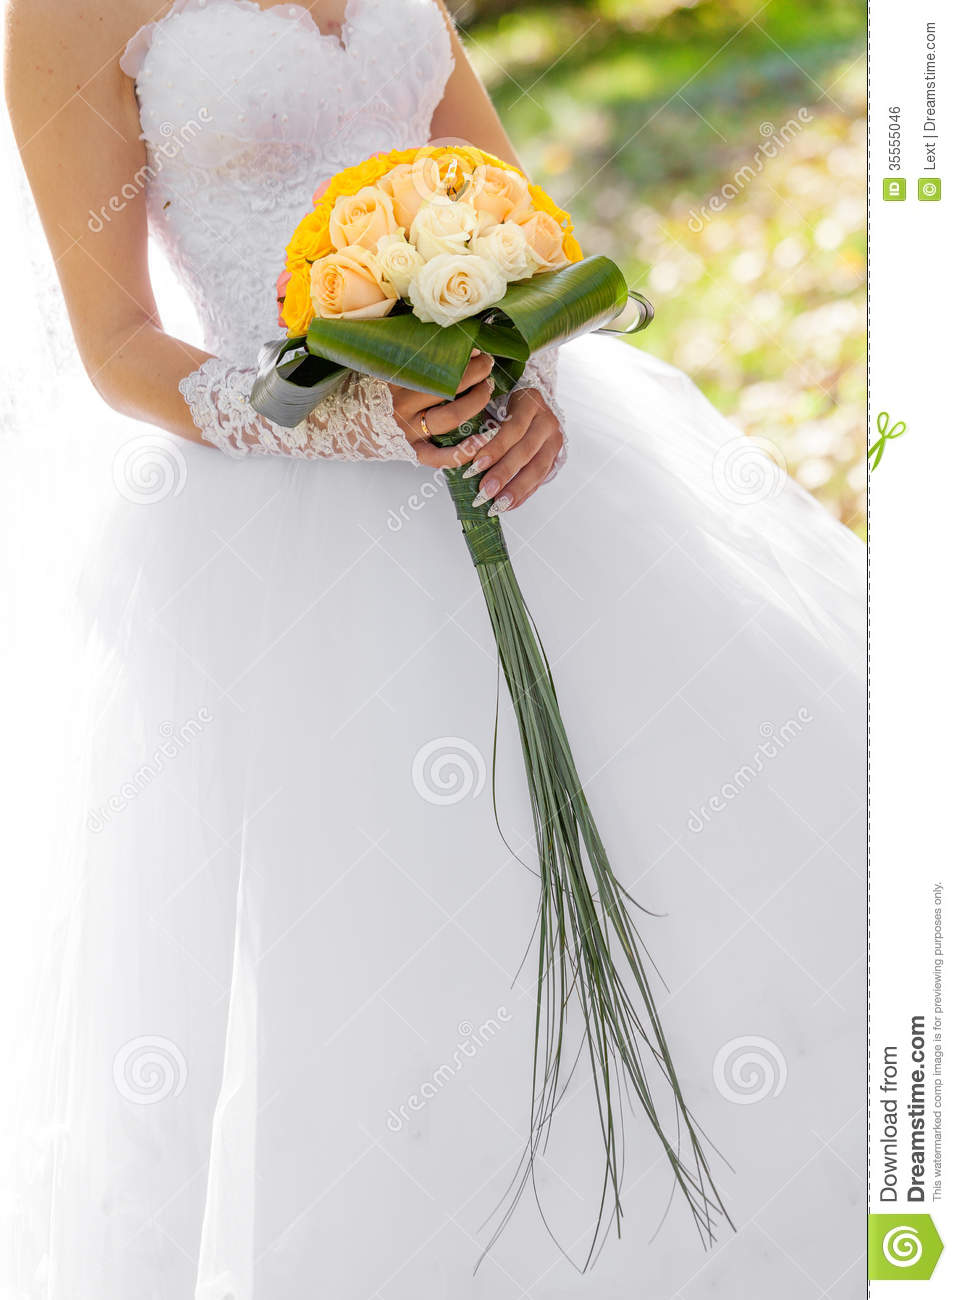 Wedding bouquet from flowers in hands of the bride stock photo royalty free stock photo izmirmasajfo